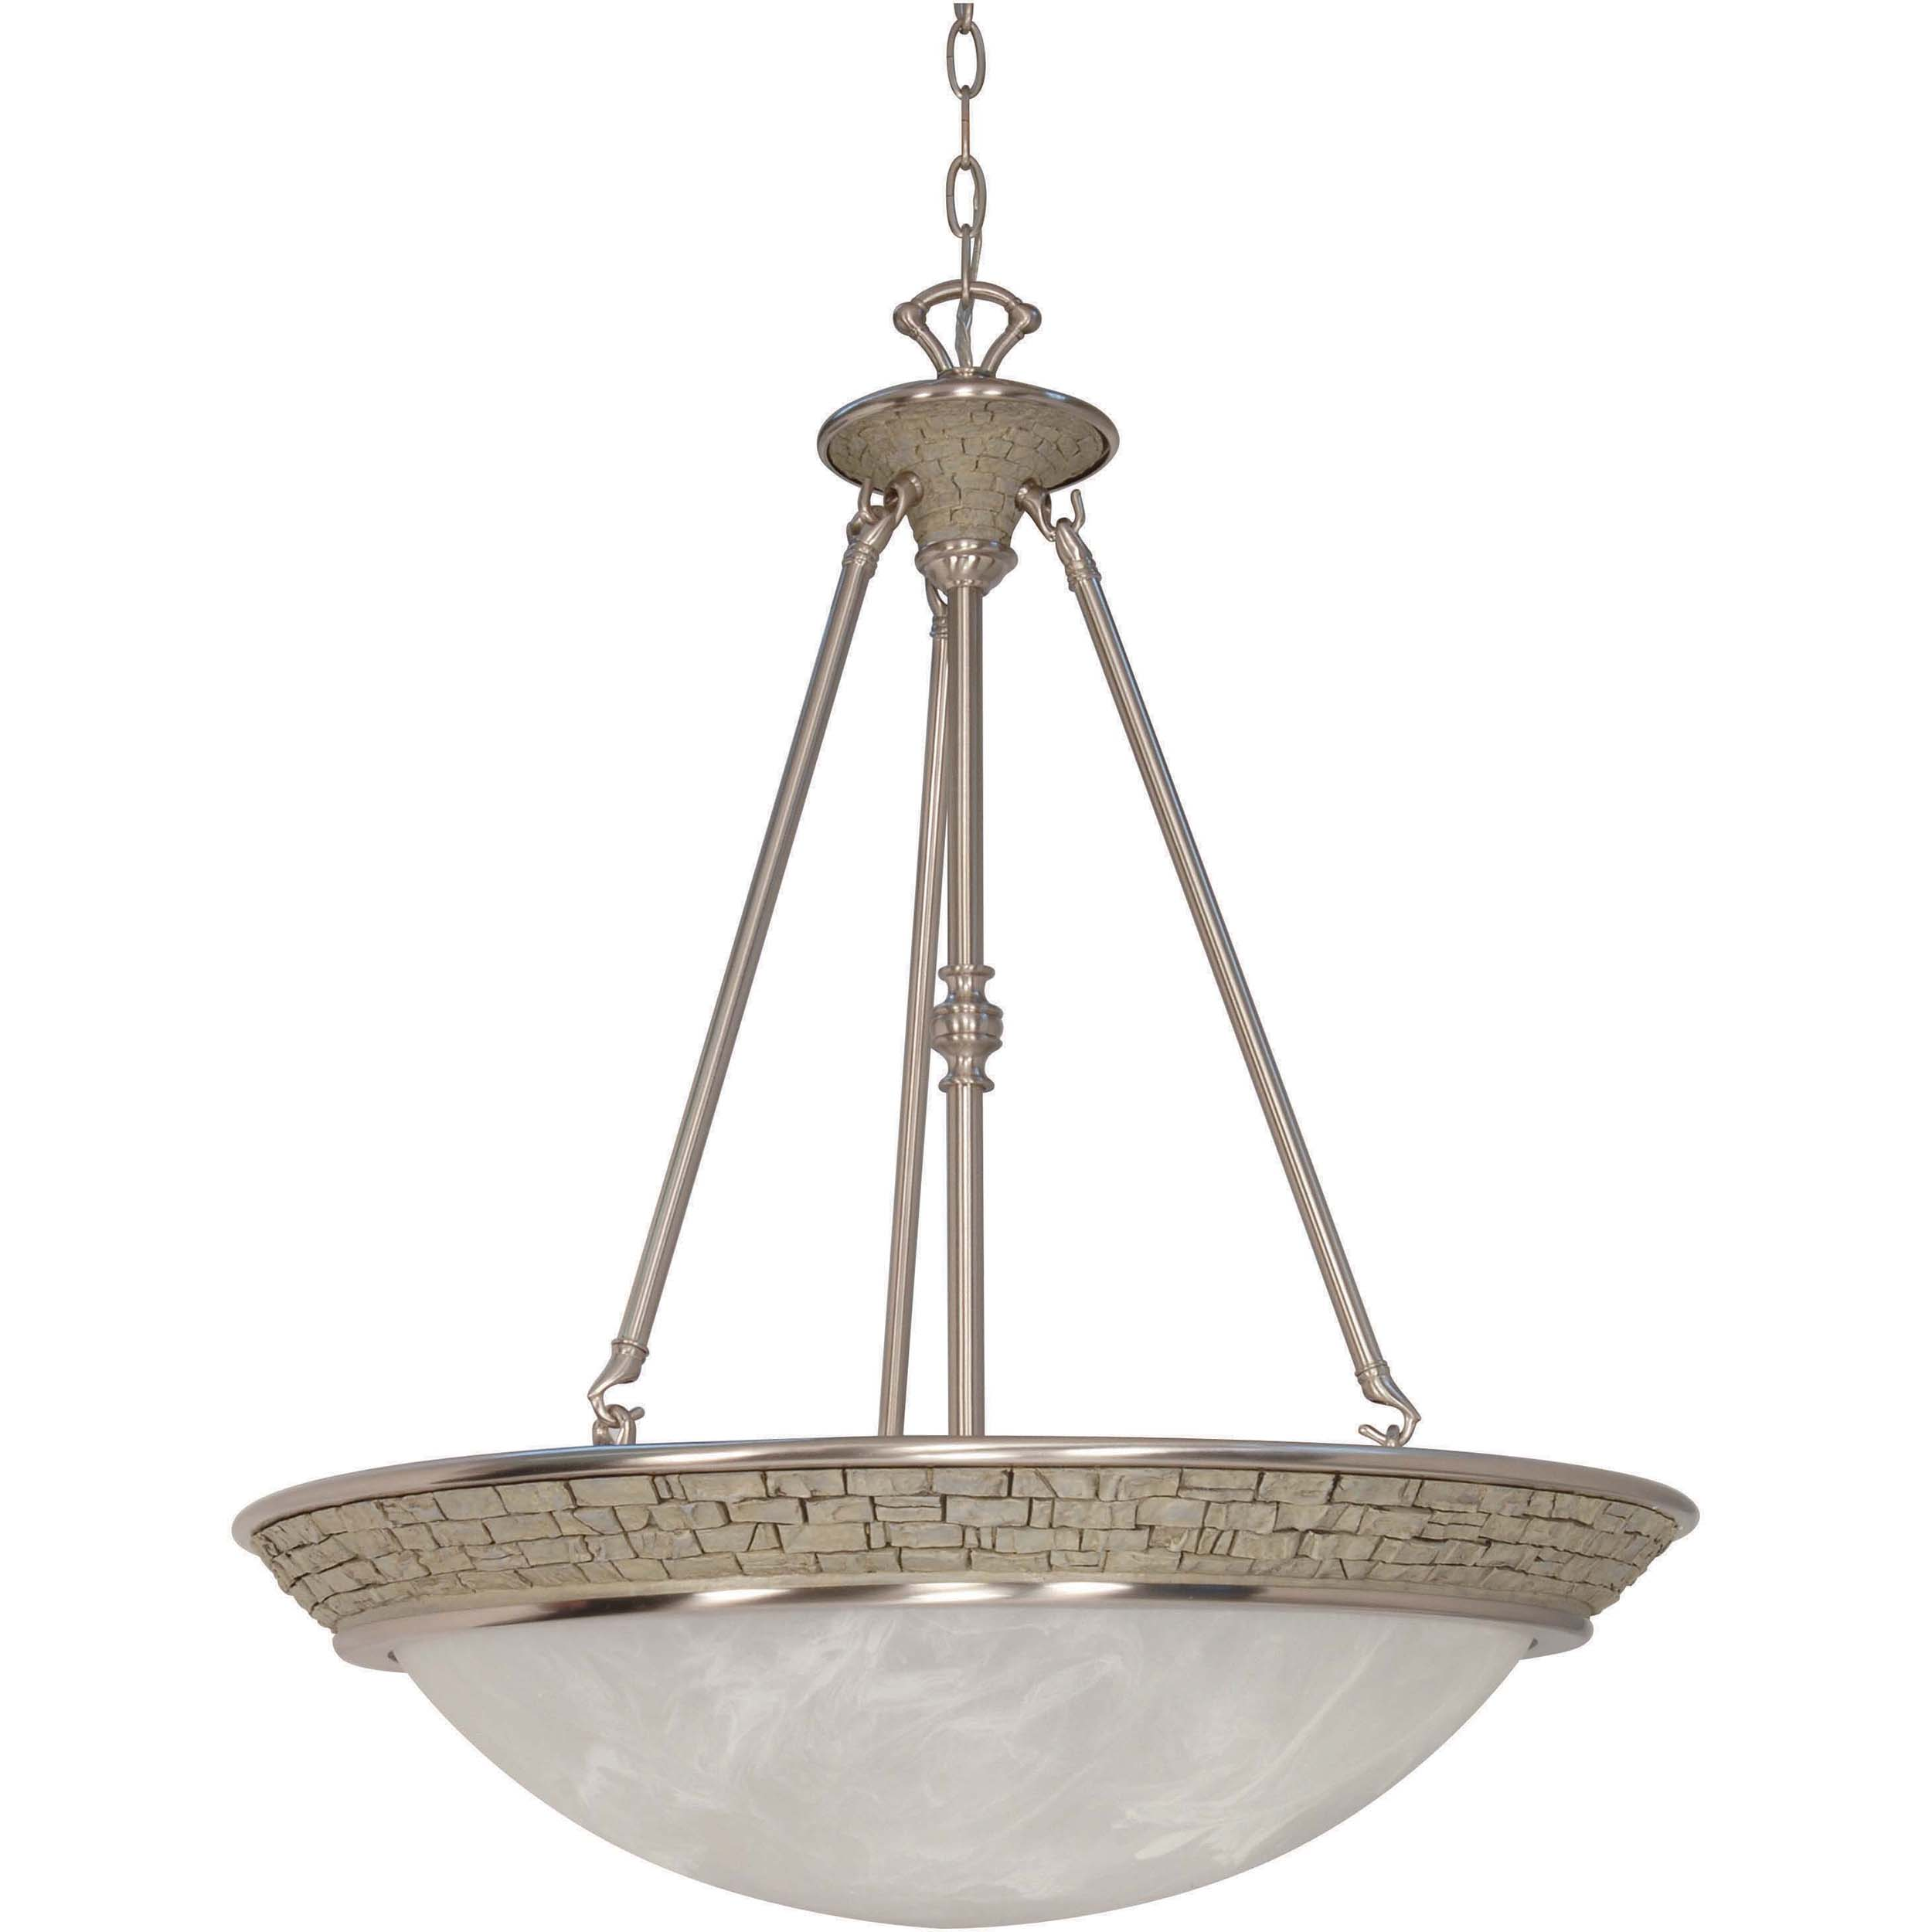 Rockport Milano Brushed Nickel Alabaster Glass 4-light Pendant Fixture